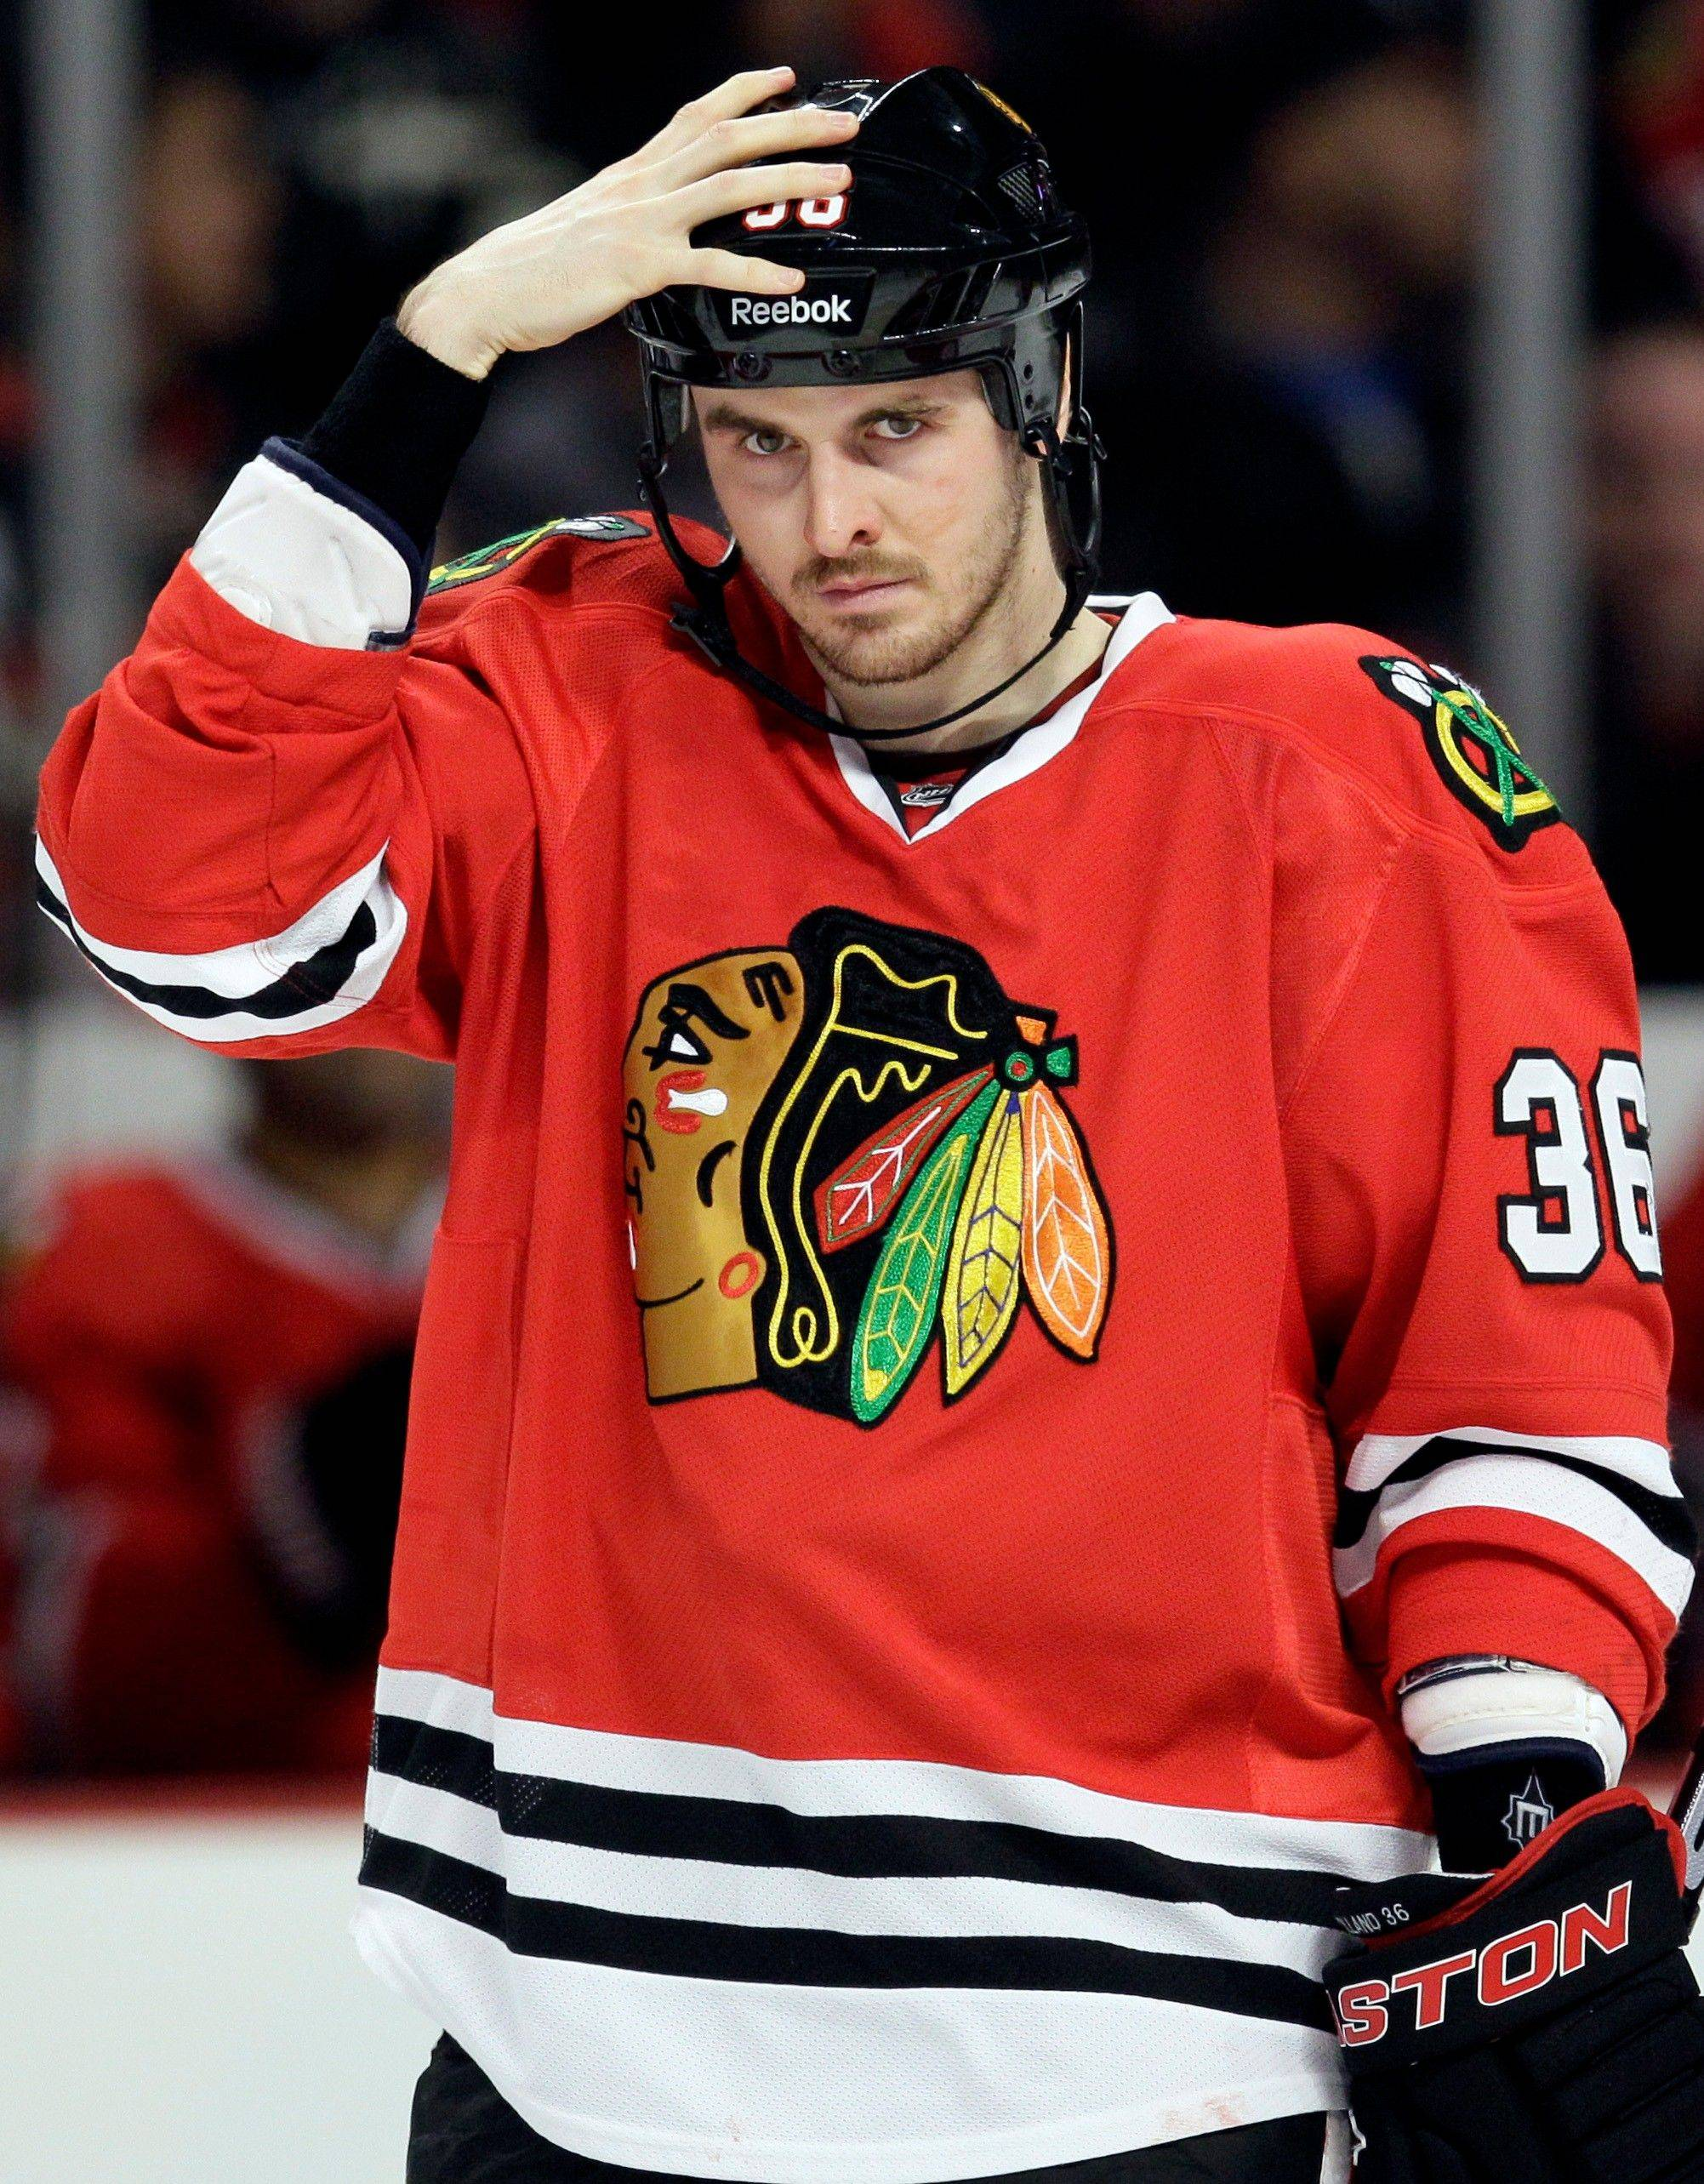 Blackhawks' Dave Bolland (36) checks his helmet during the third period of an NHL hockey game against the Colorado Avalanche in Chicago, Friday, Jan. 6, 2012. The Avalanche won 4-0.